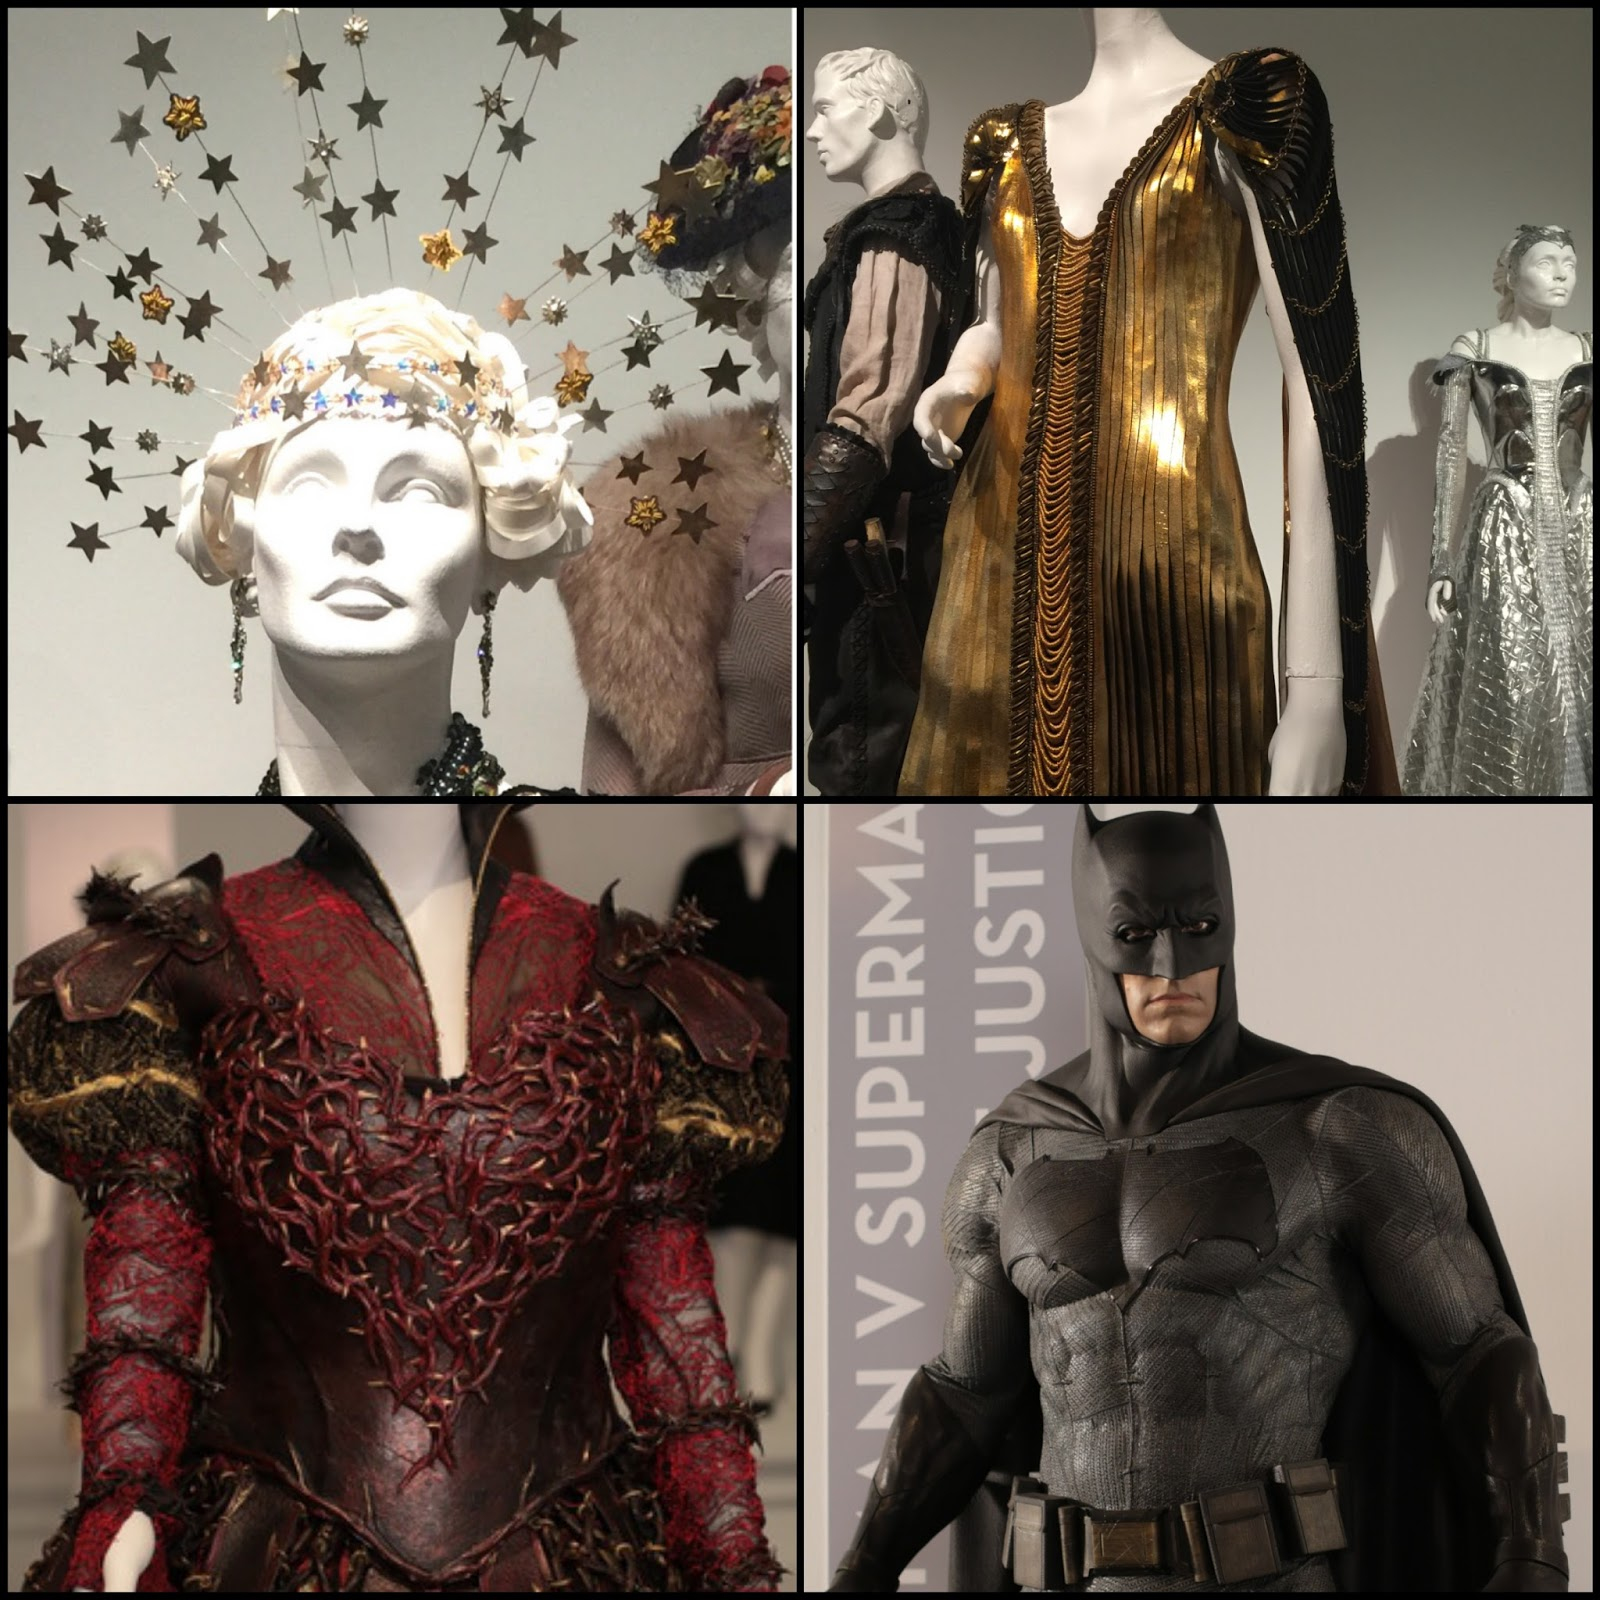 There are over 100 costumes from 20+ films showcased in this yearu0027s exhibition including Oscar-nominees for Best Costume Design  Allied   Fantastic Beast ... & FIDM.....FIDM Museum 25th Art of Motion Picture Costume Design ...